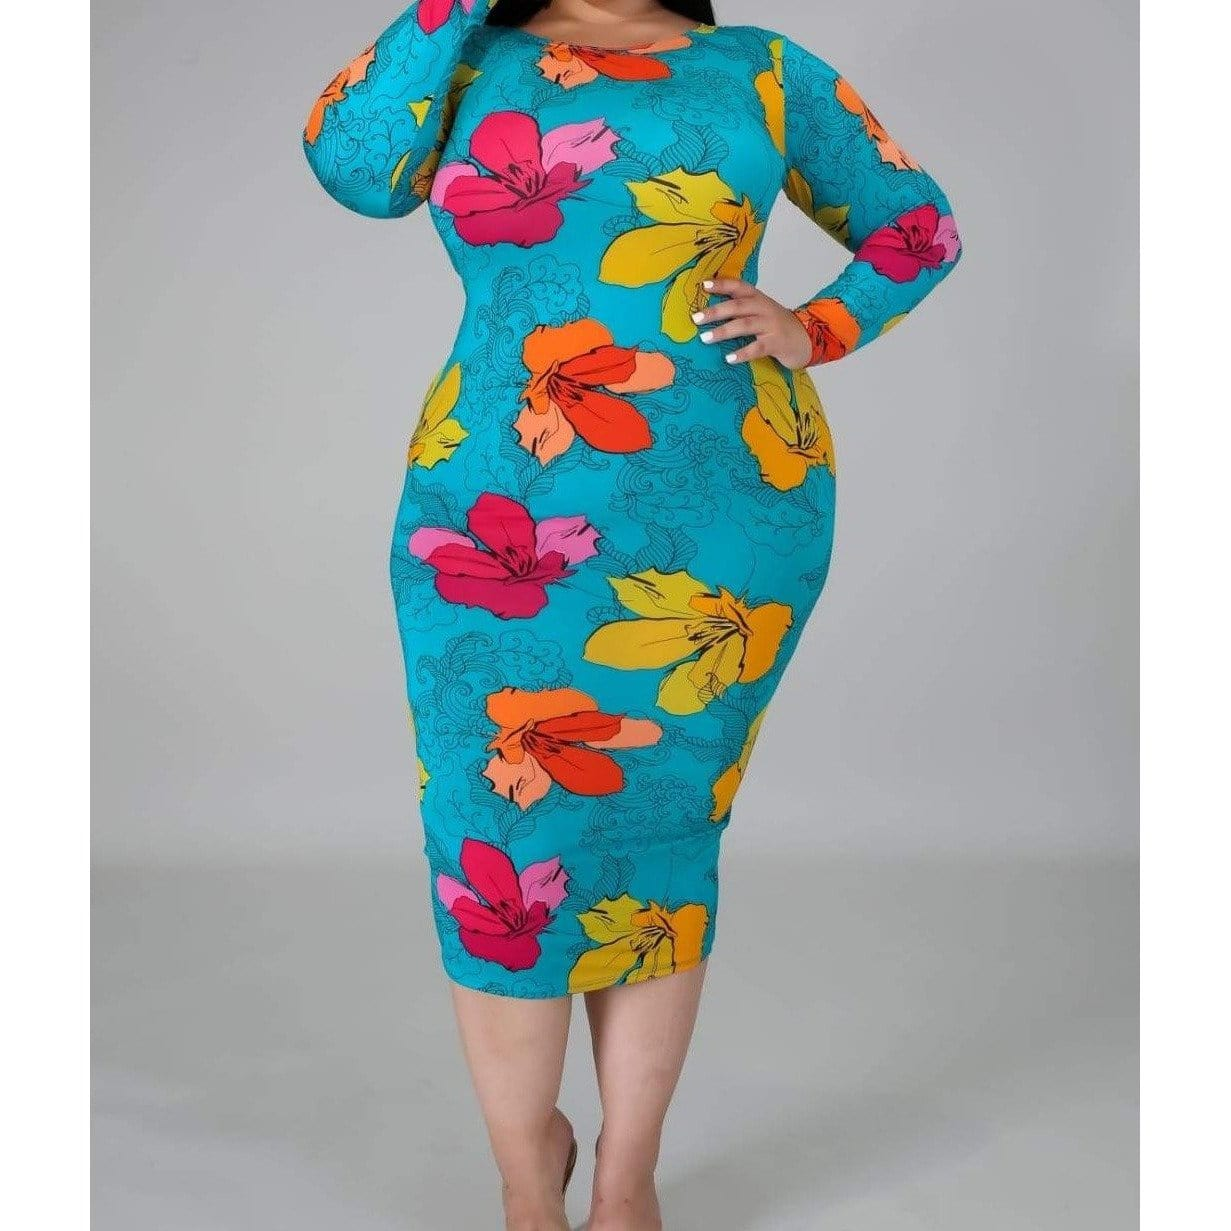 Posh Shoppe: Turquoise Flower Print Dress Dress